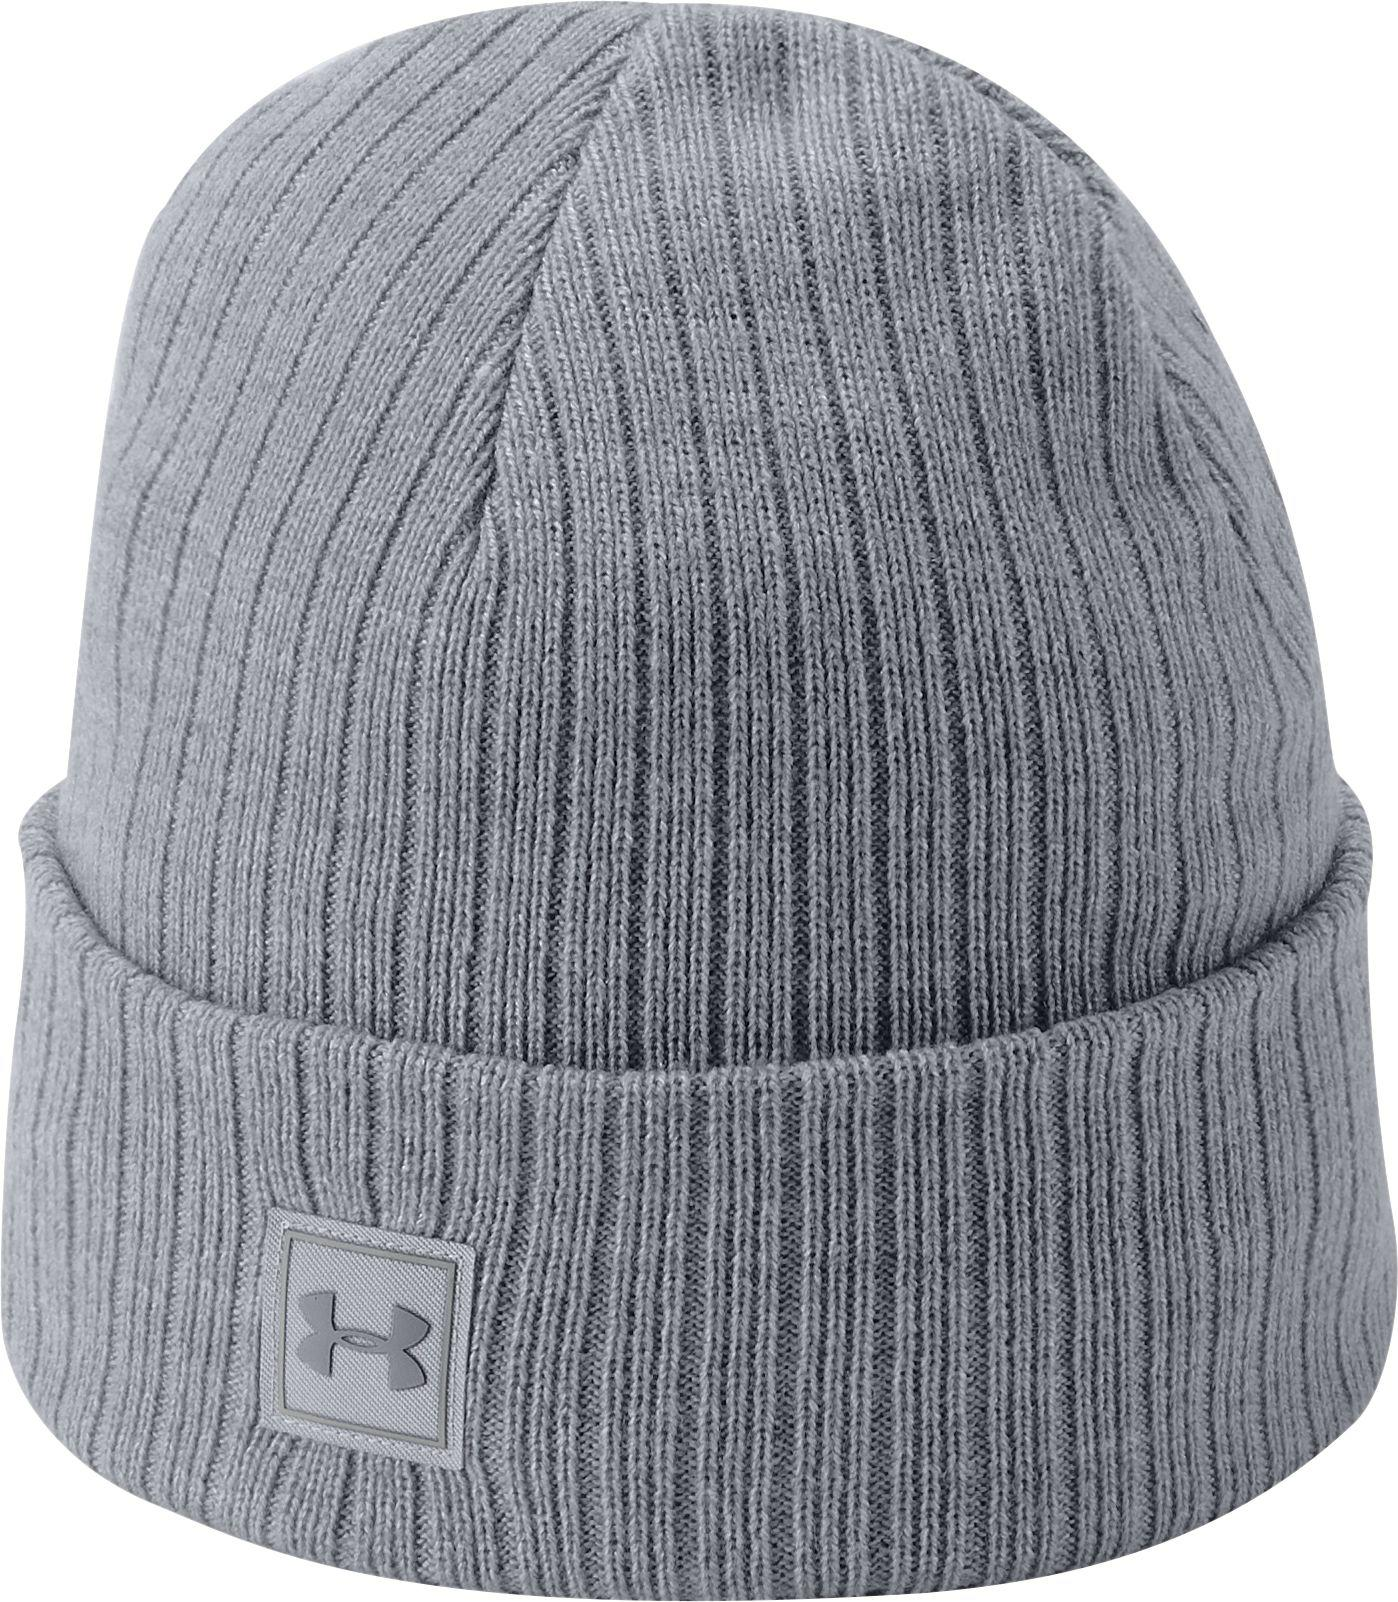 Lyst - Under Armour Truckstop 2.0 Beanie in Gray for Men 2184d1a5bf03